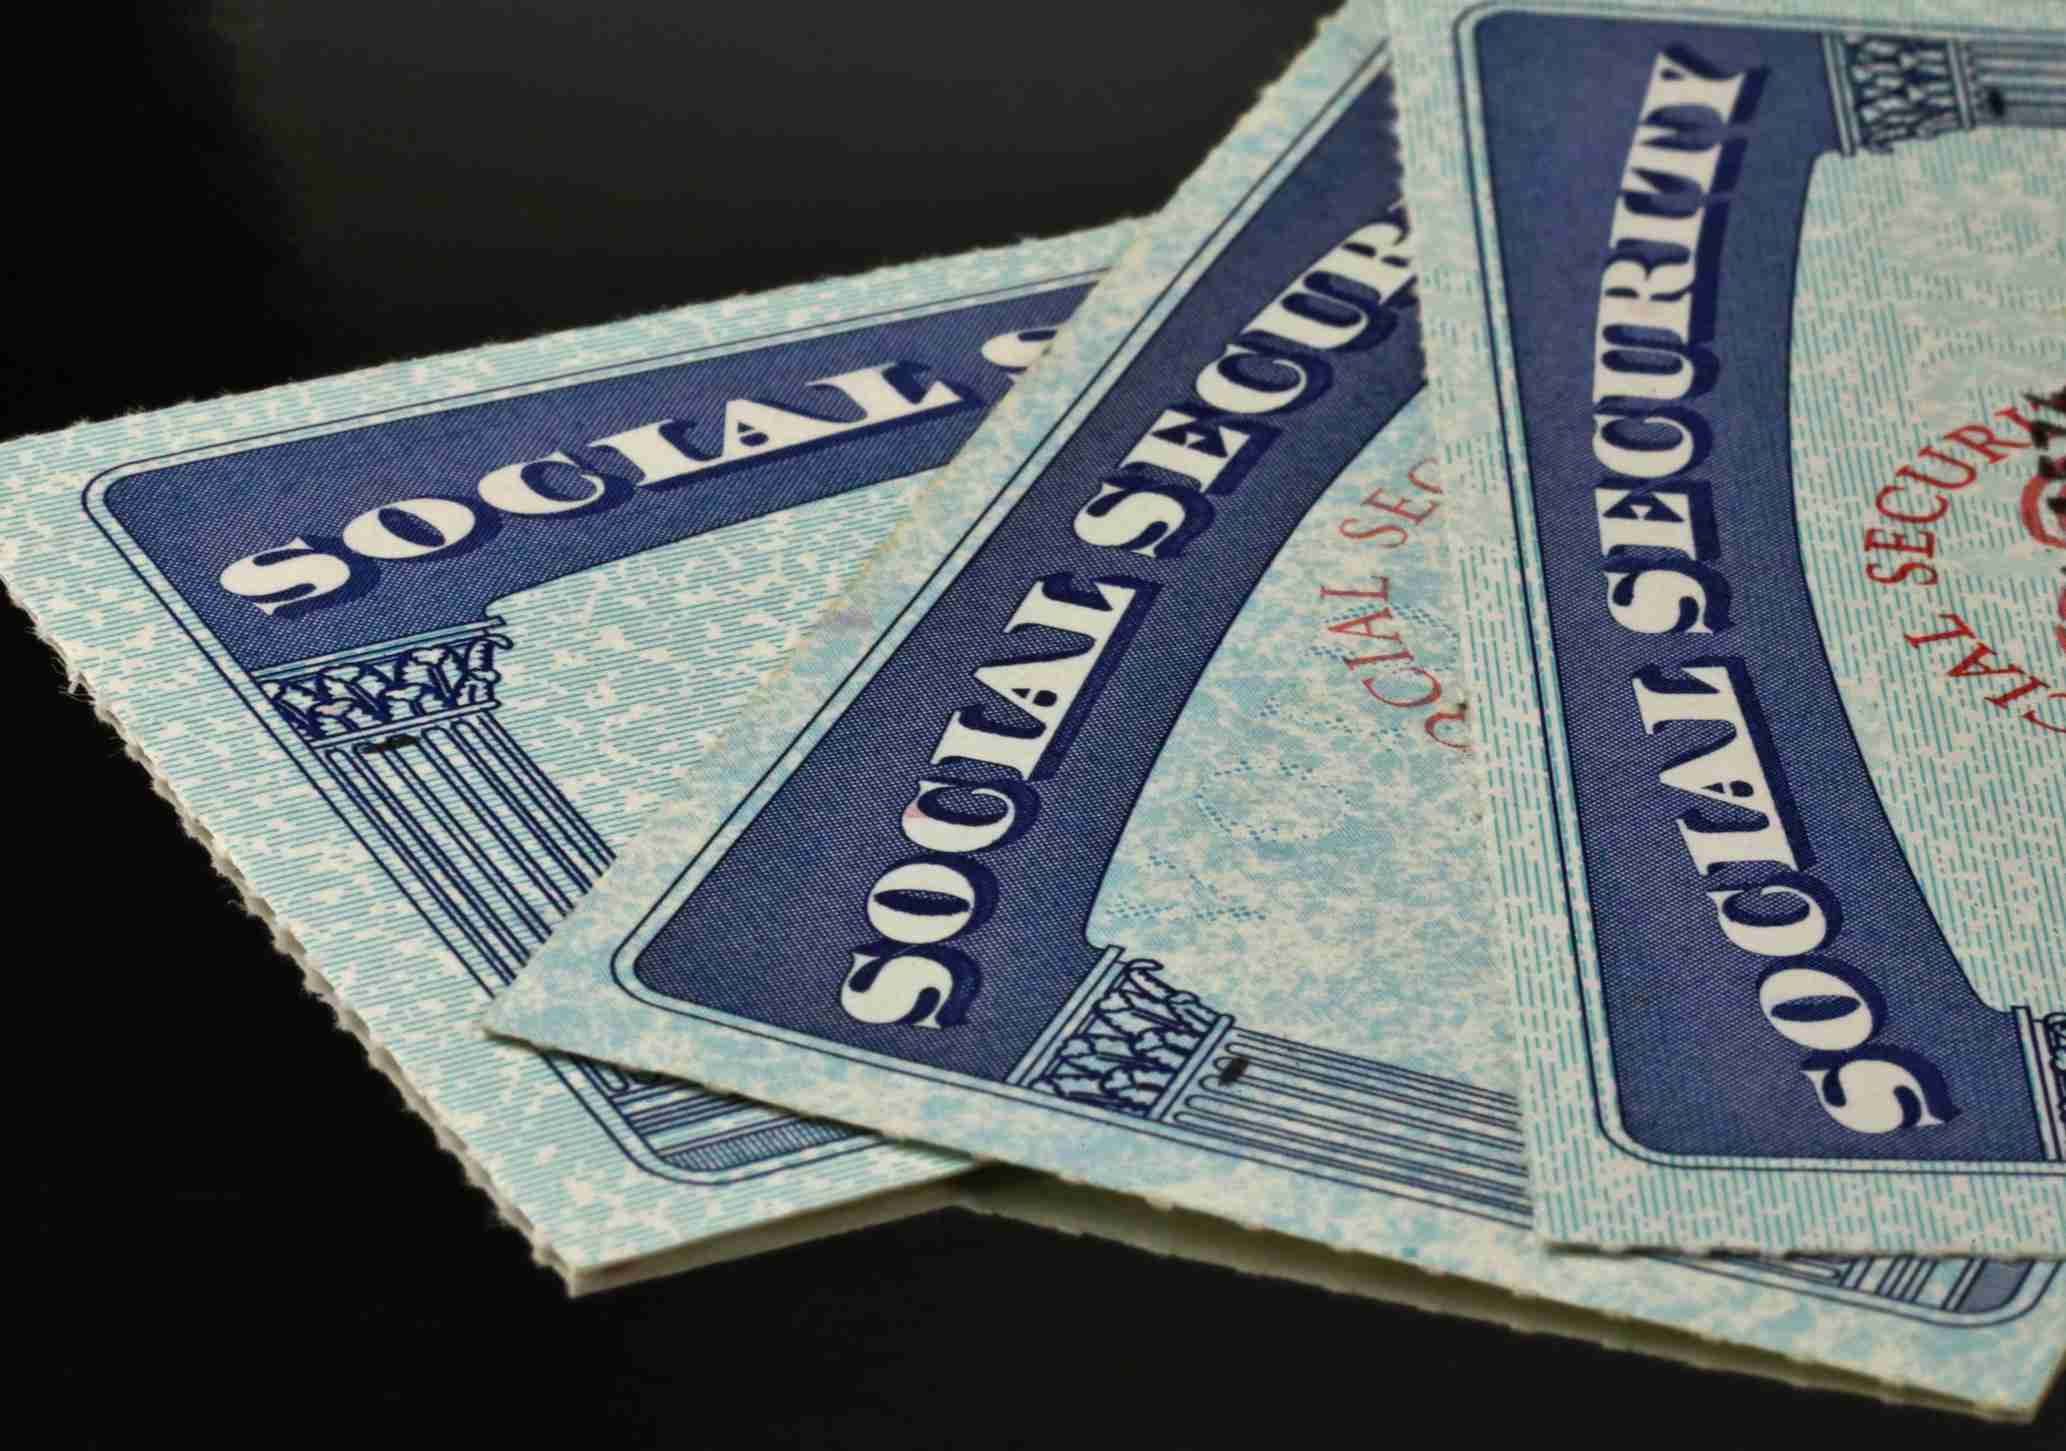 Social Security cards on black background